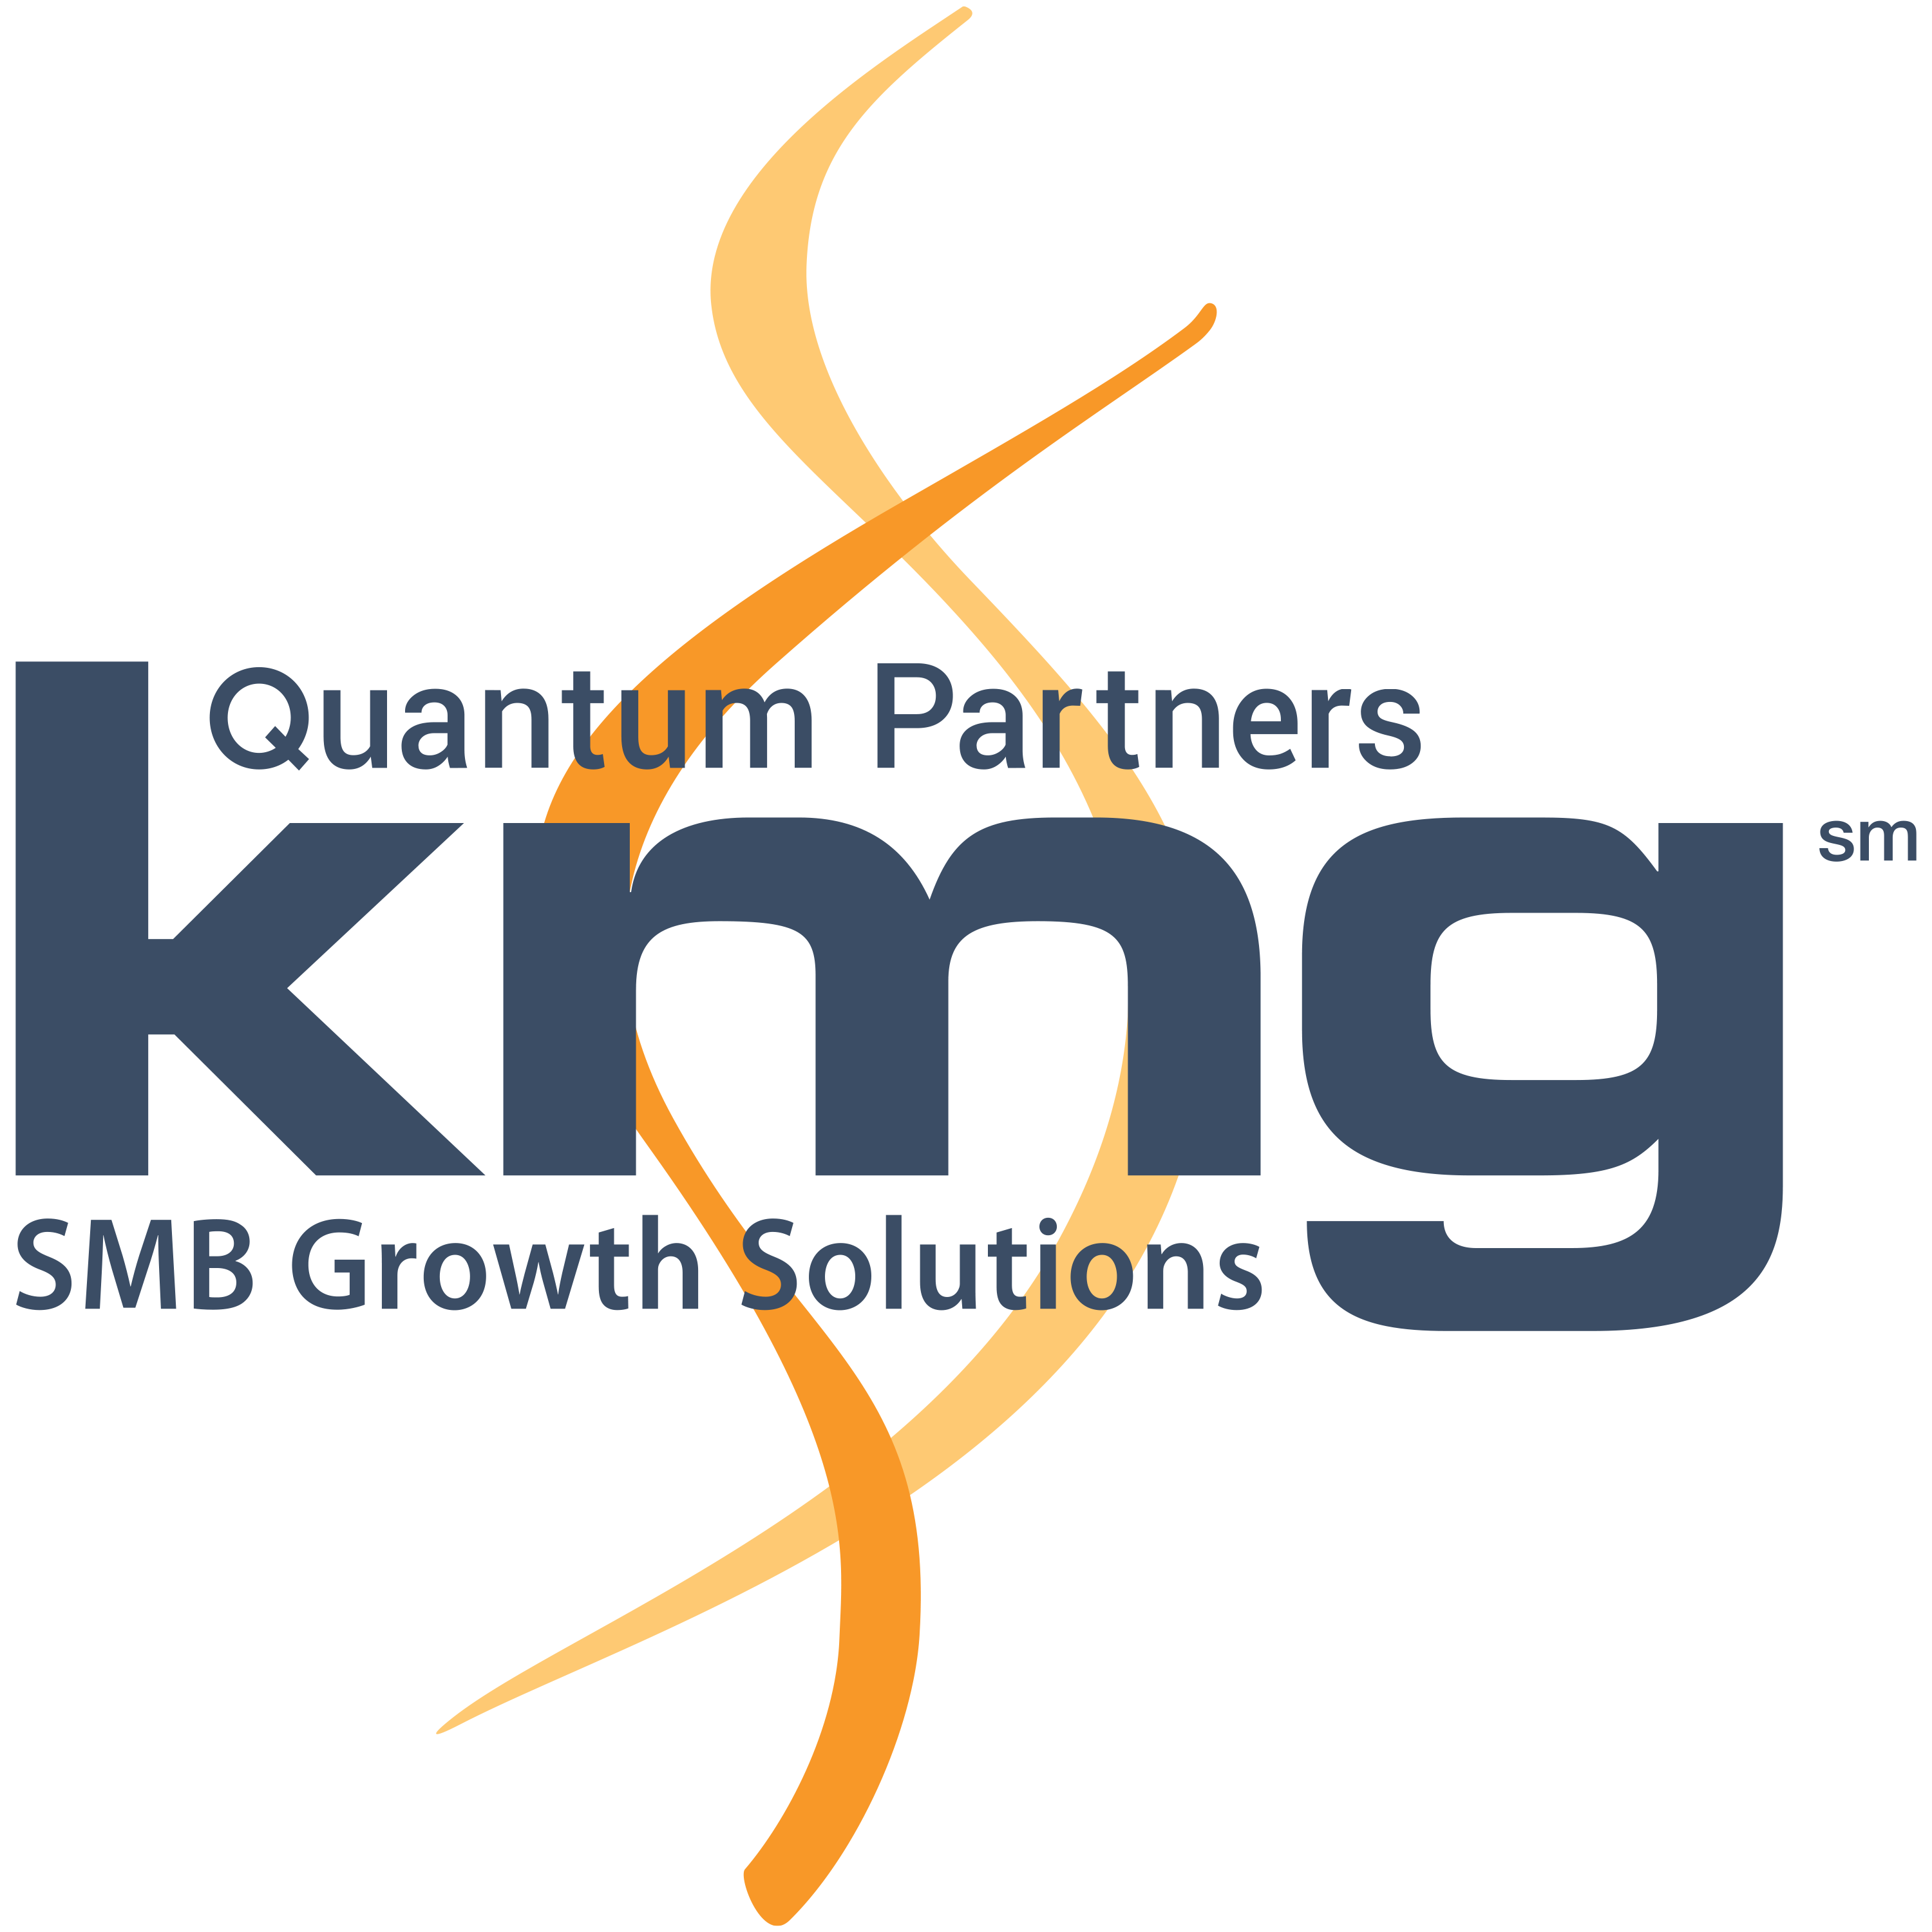 SMB Growth Solutions